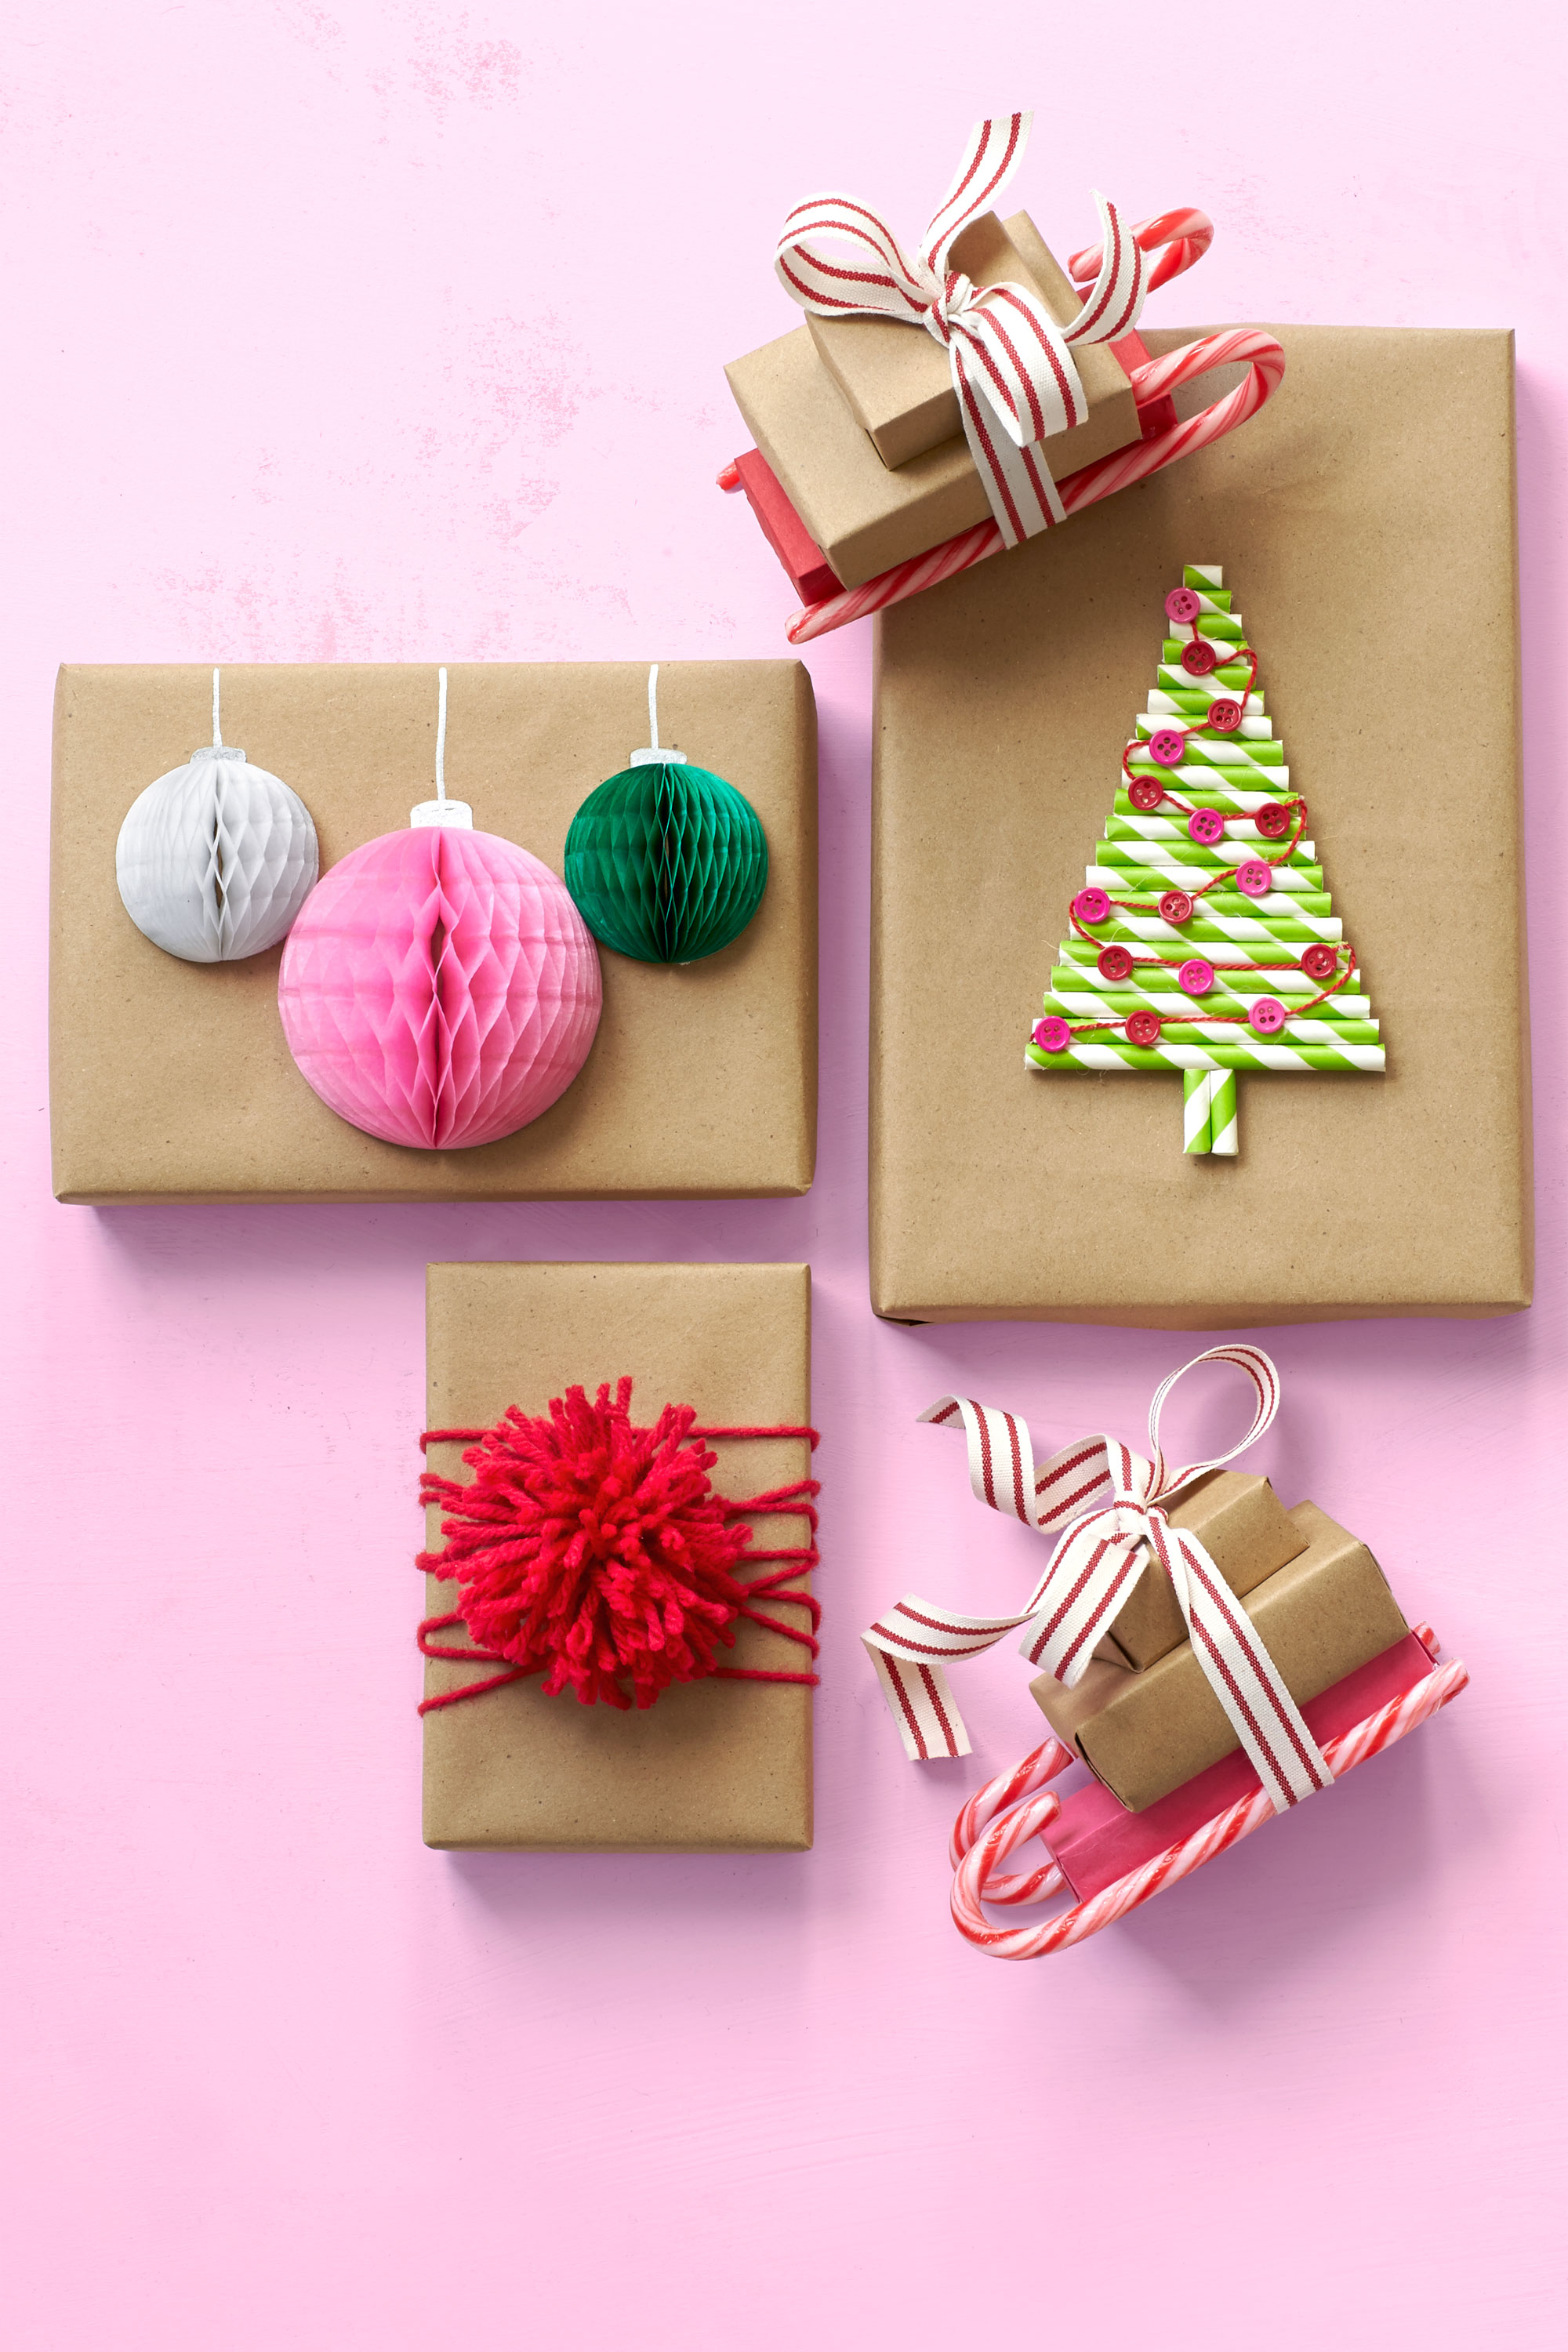 60 DIY Homemade Christmas Gifts - Craft Ideas for Christmas Presents